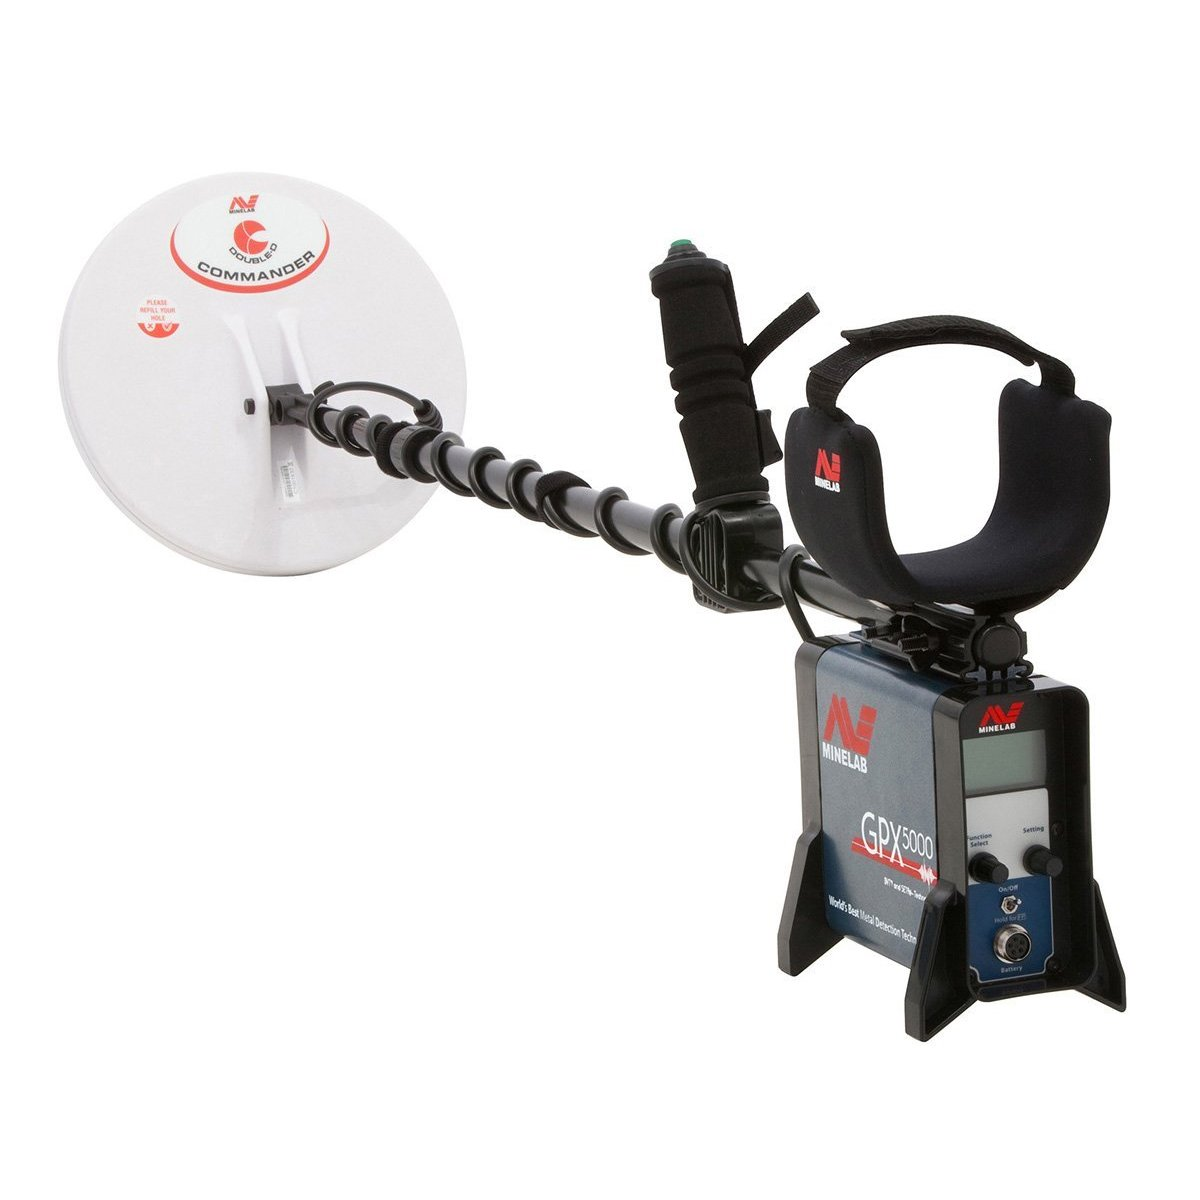 Amazon.com : Minelab GPX 5000 Metal Detector Special with PRO-SONIC Wireless Audio System : Garden & Outdoor